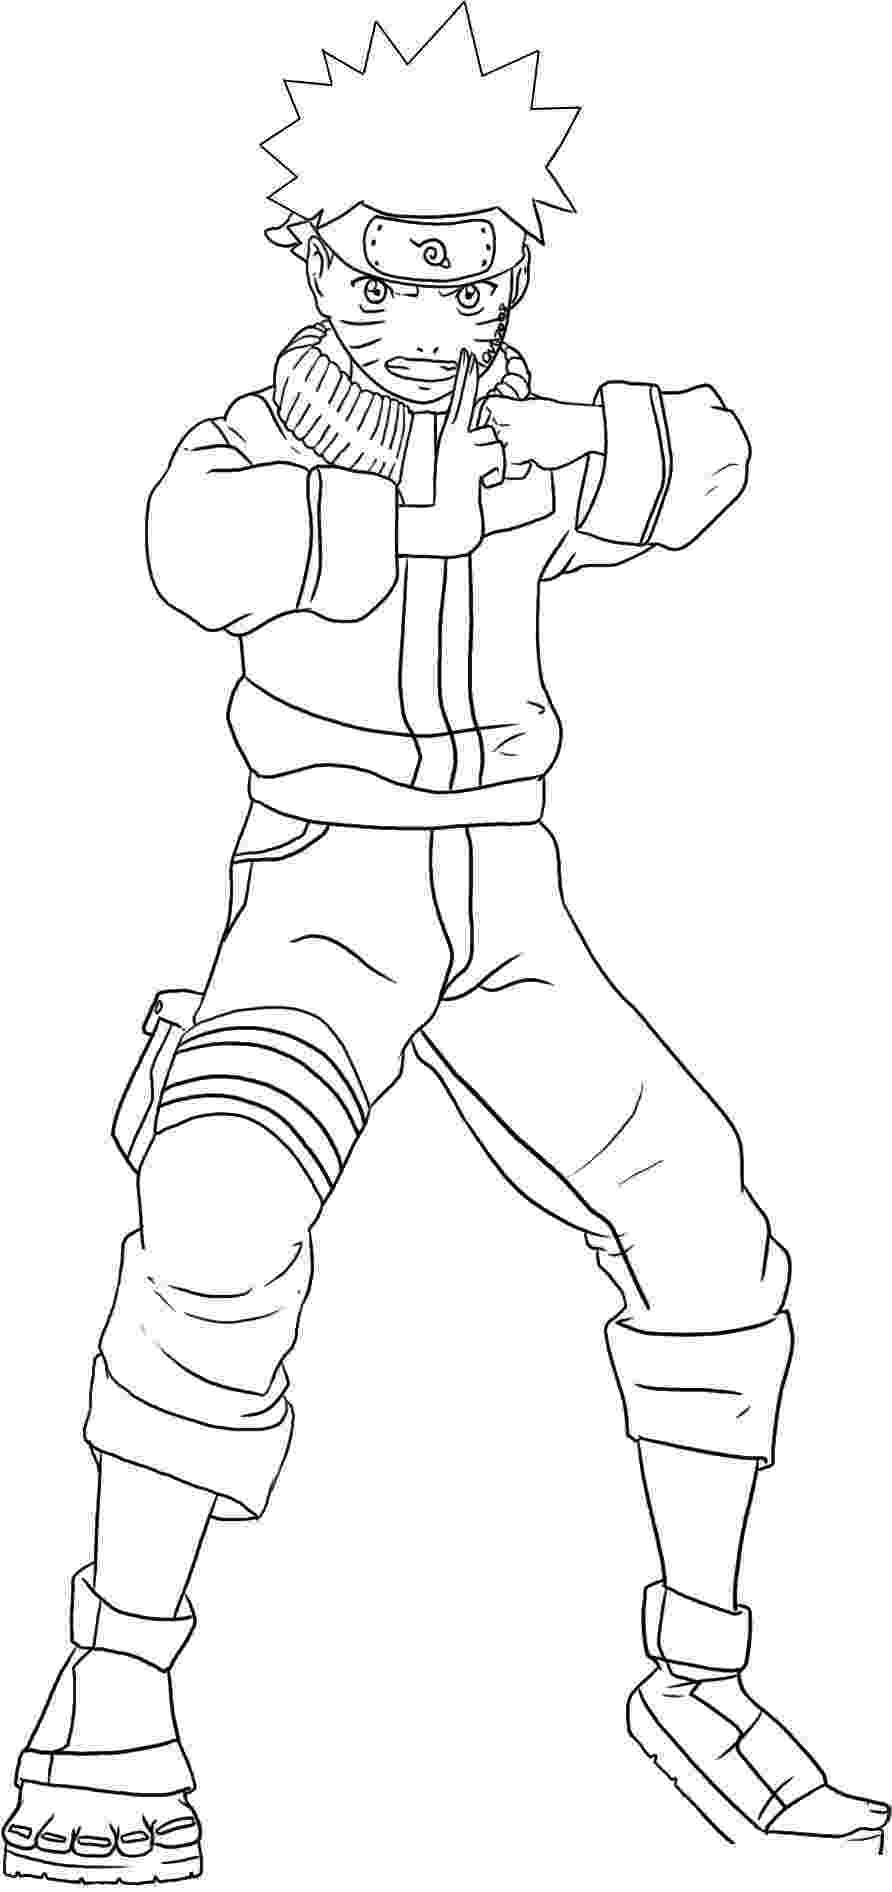 naruto color pages printable coloring pages naruto coloring pages naruto pages color